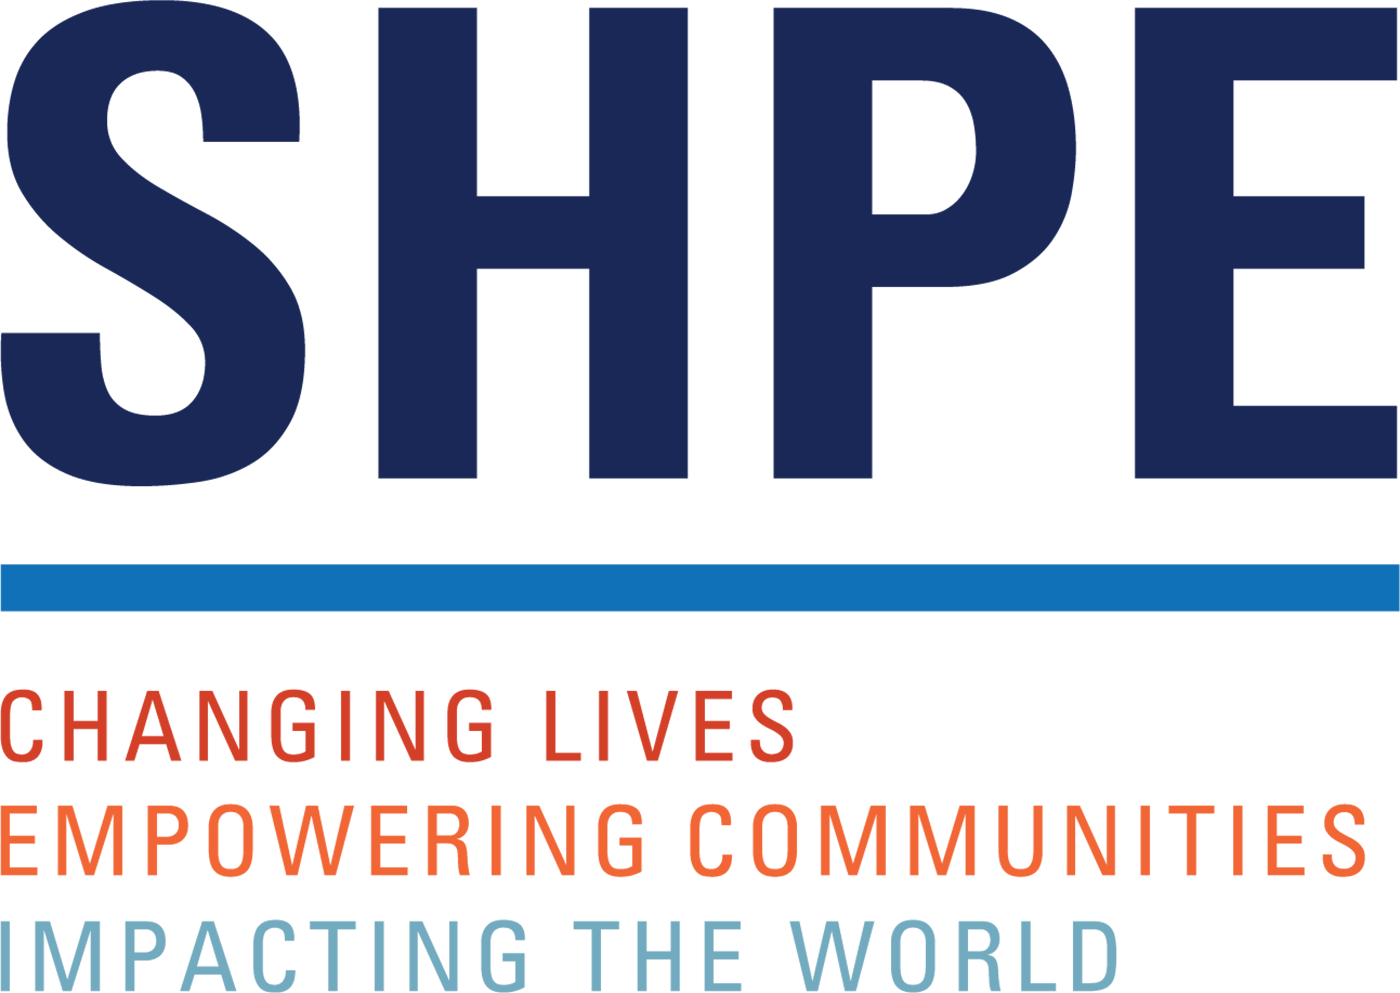 The Society of Professional Hispanic Engineers (SHPE): was founded in 1974 and is the leading social-technical organization whose primary function is to enhance and achieve the potential of Hispanics in engineering, math and science.